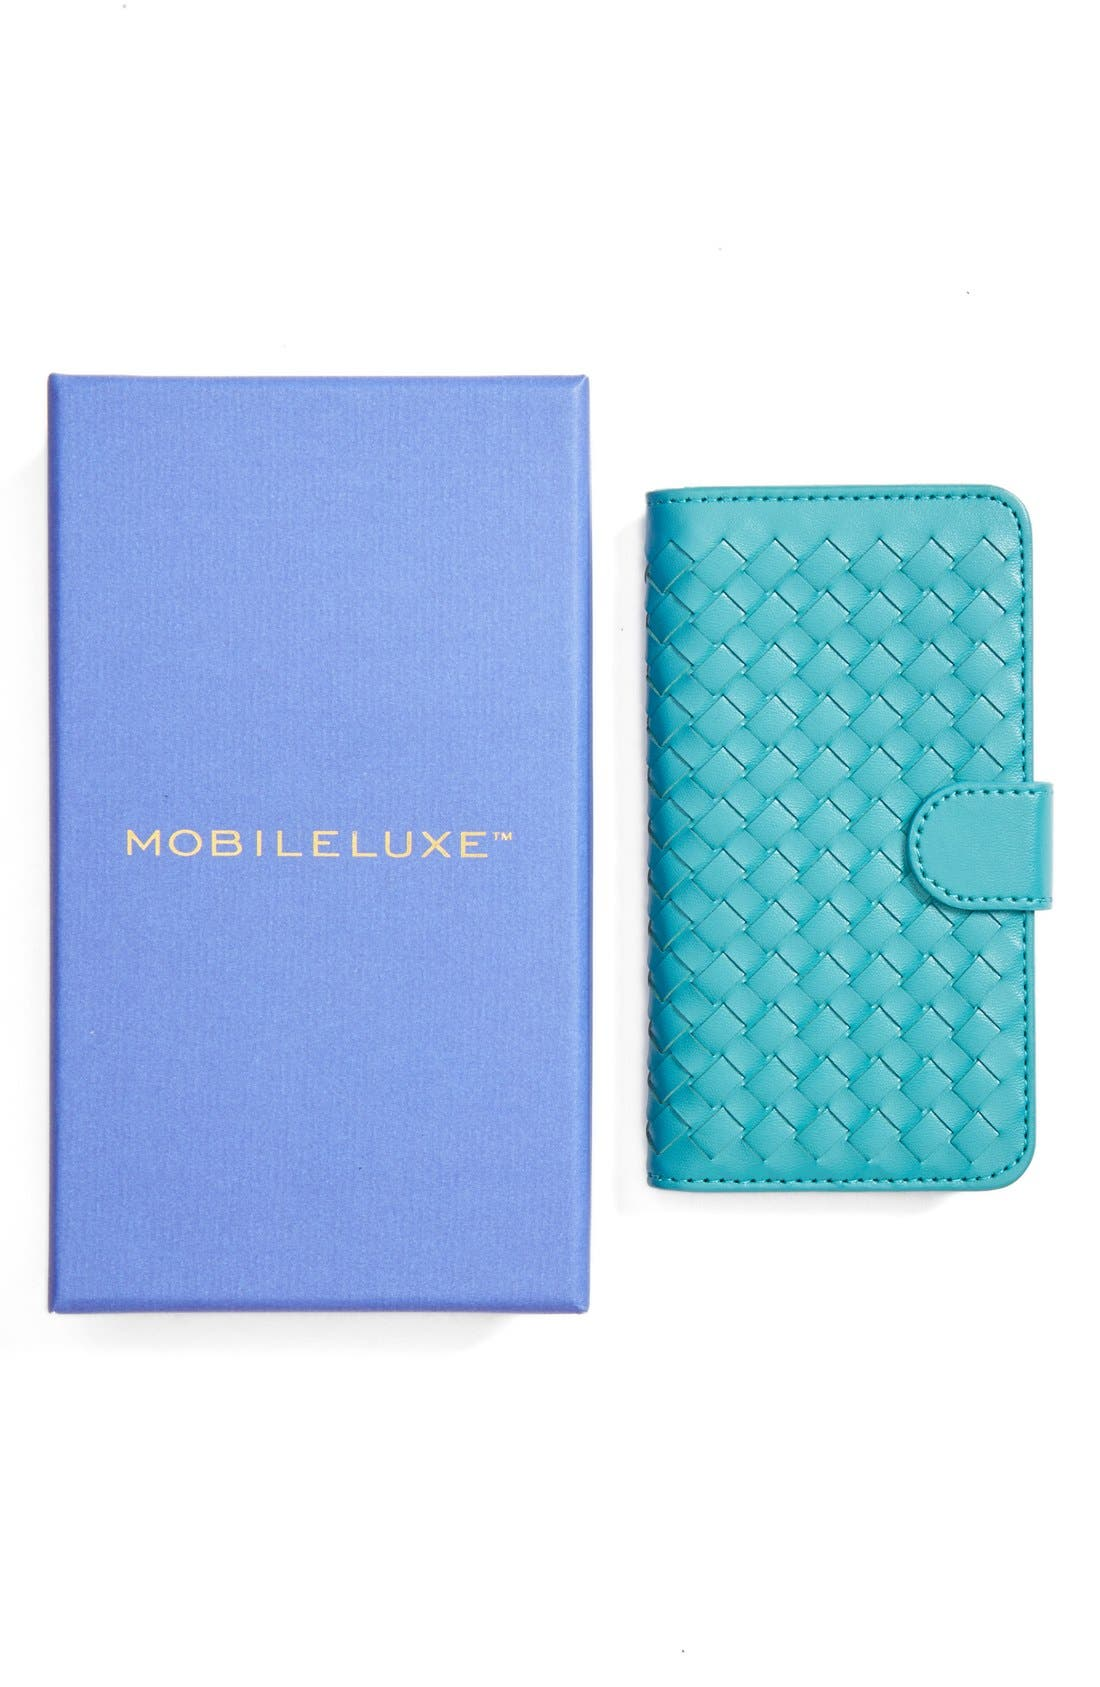 Mobileluxe iPhone 6/6s Wallet Case